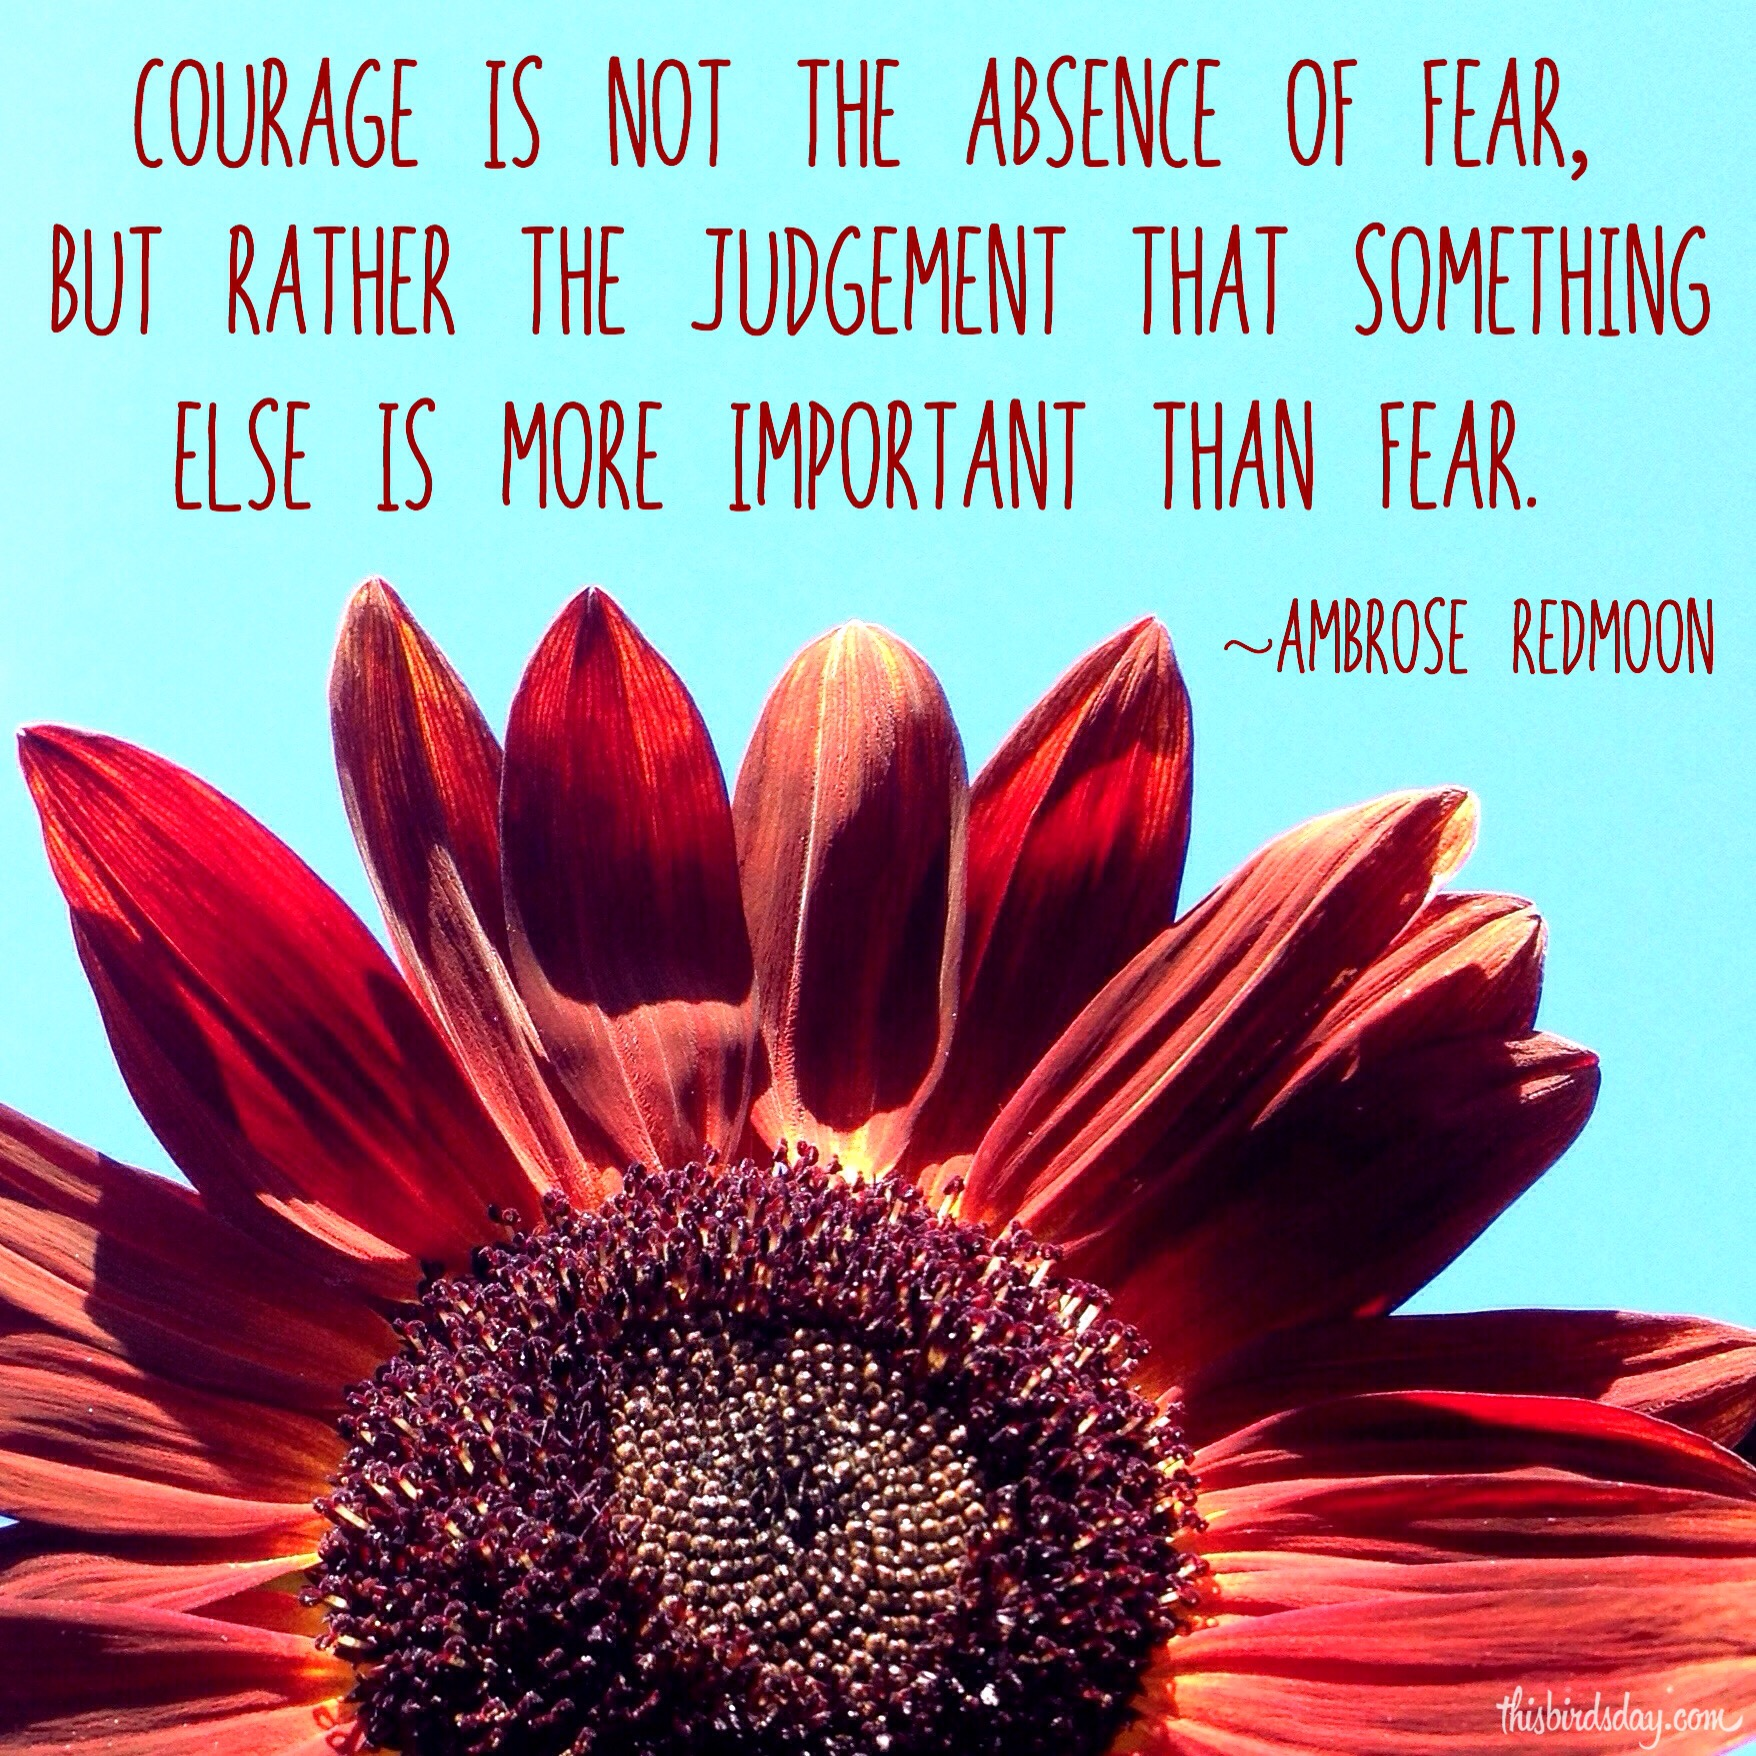 """""""Courage is not the absence of fear, but rather the judgement that something is more important than fear."""" Ambrose Redmoon. Photo copyright Sheri Landry"""